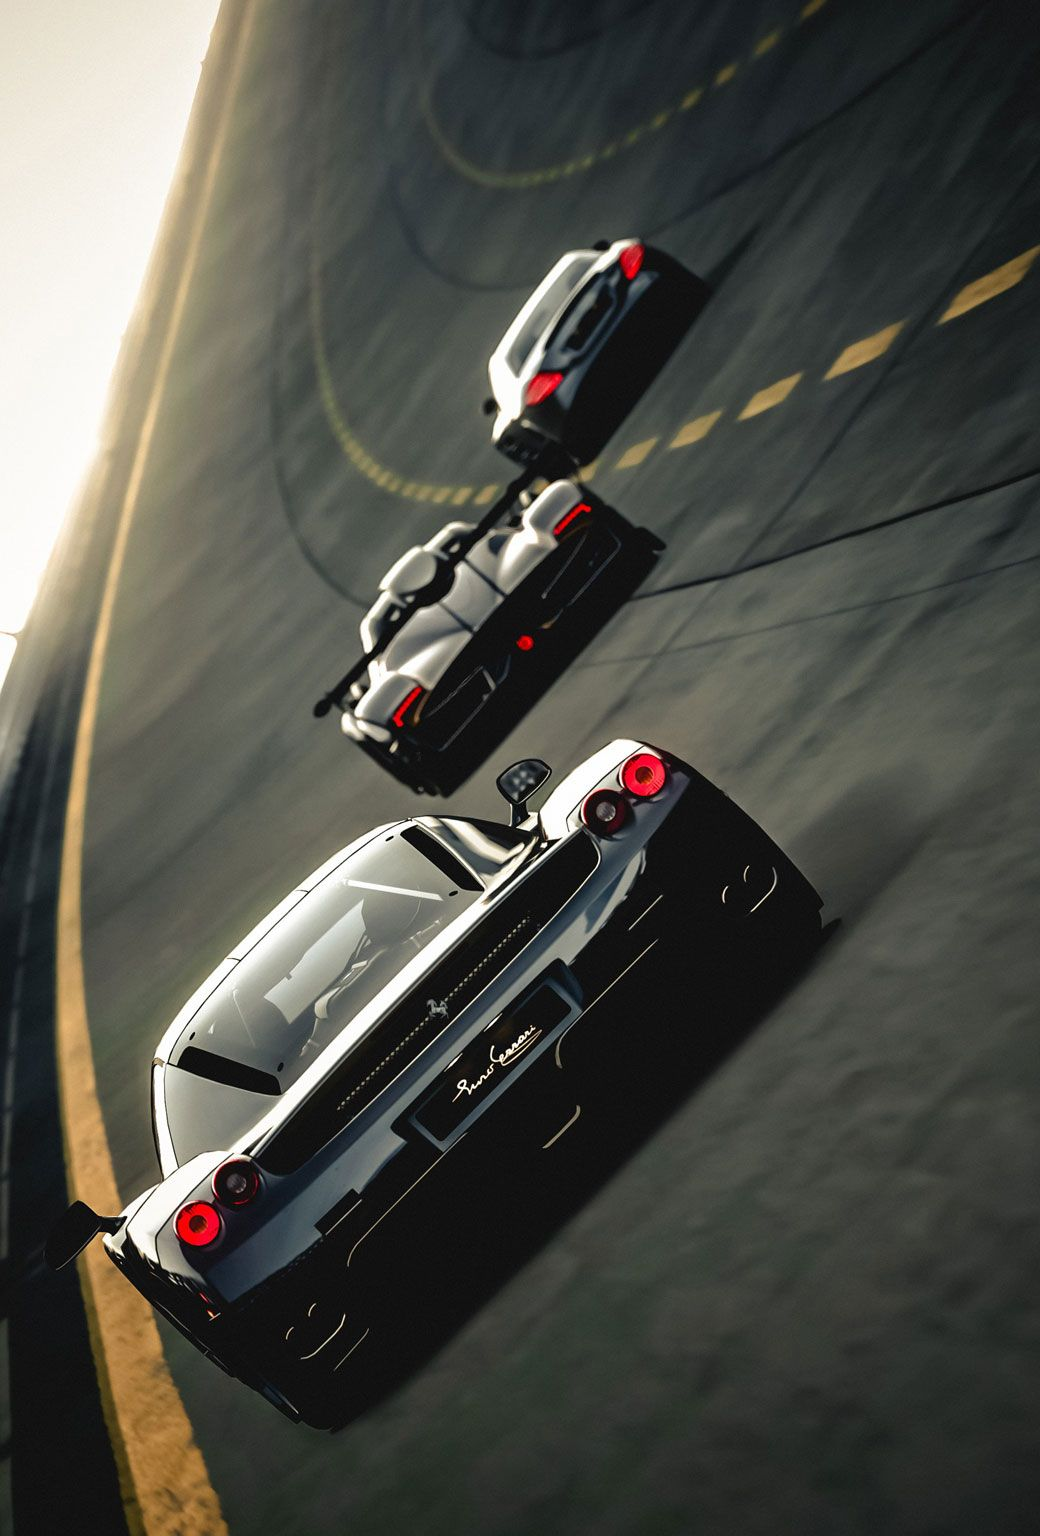 Iphone 6 wallpaper tumblr cars - Ferrari You Can Use This As Your Iphone Wallpaper